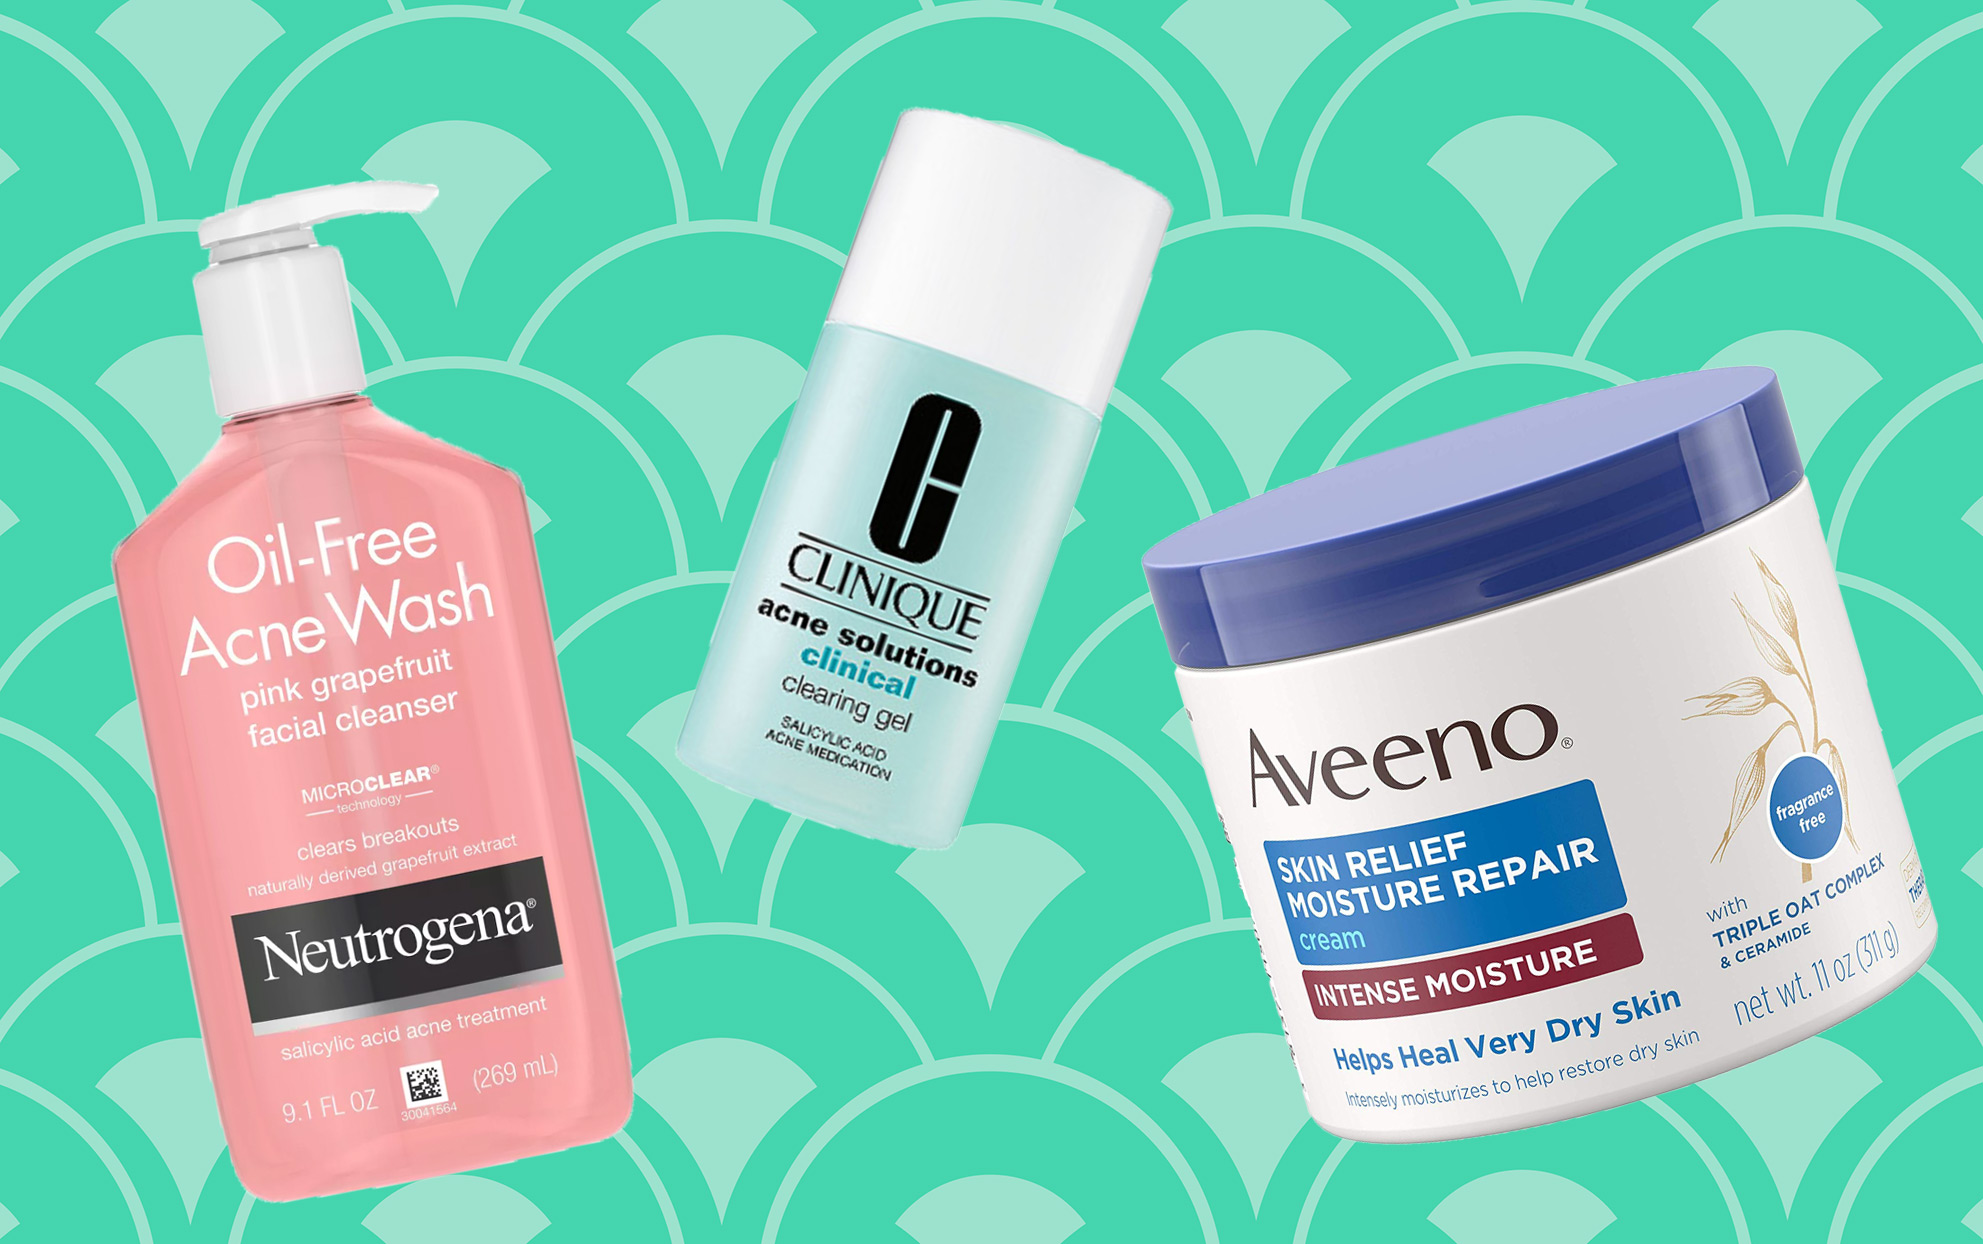 products dermatologists swear by